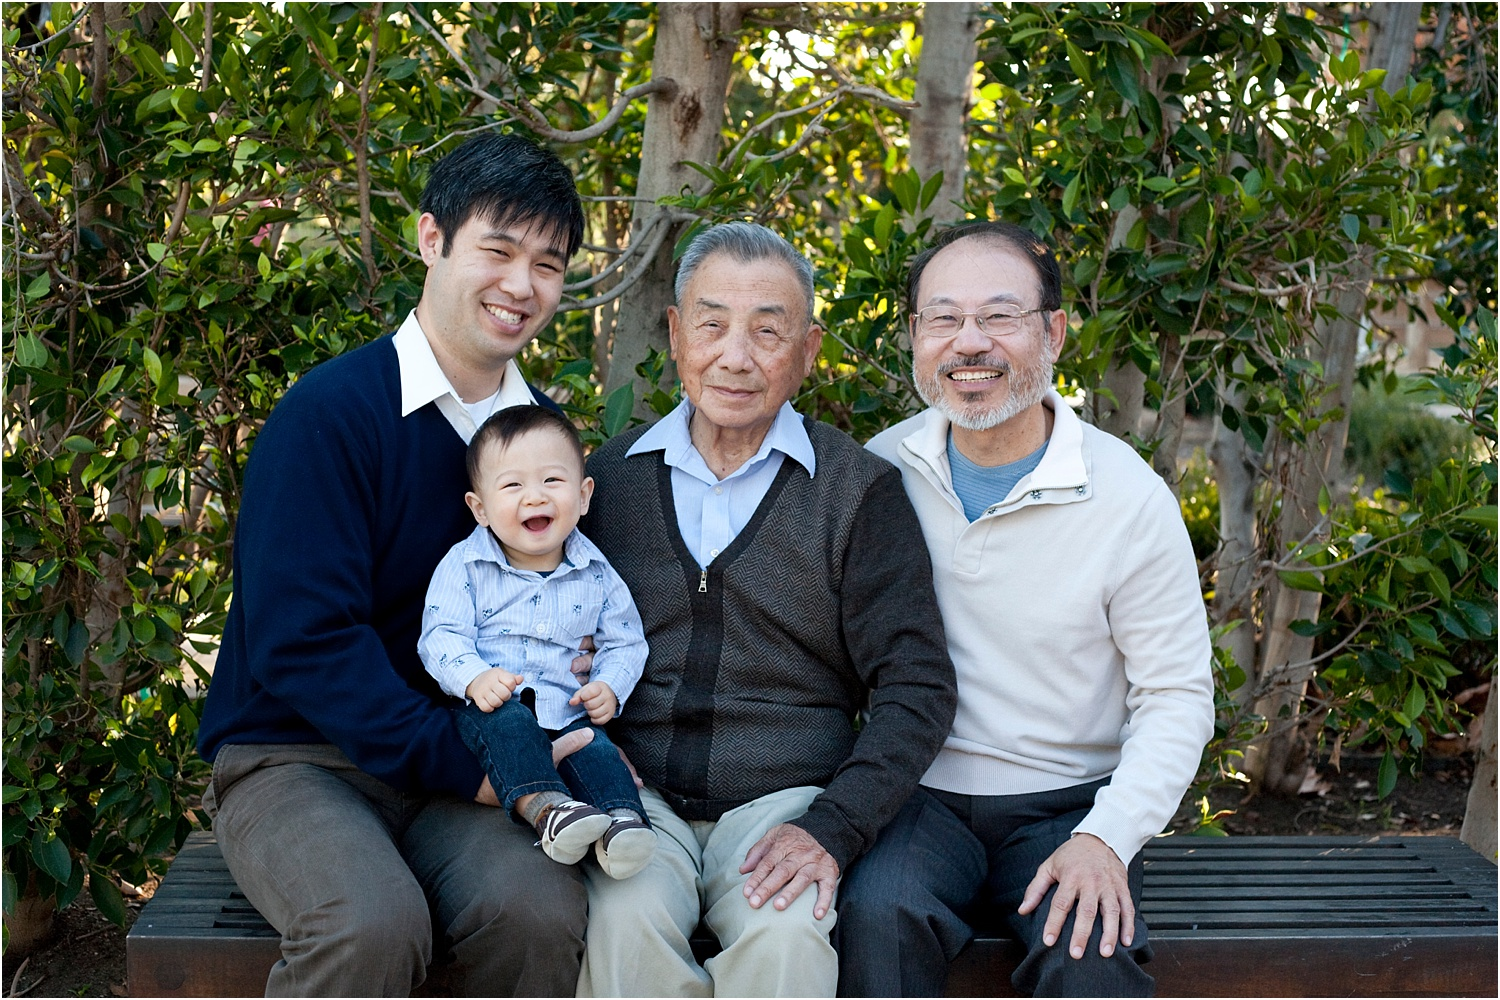 Tips for Posing Large Families and Groups - 4 generations photo